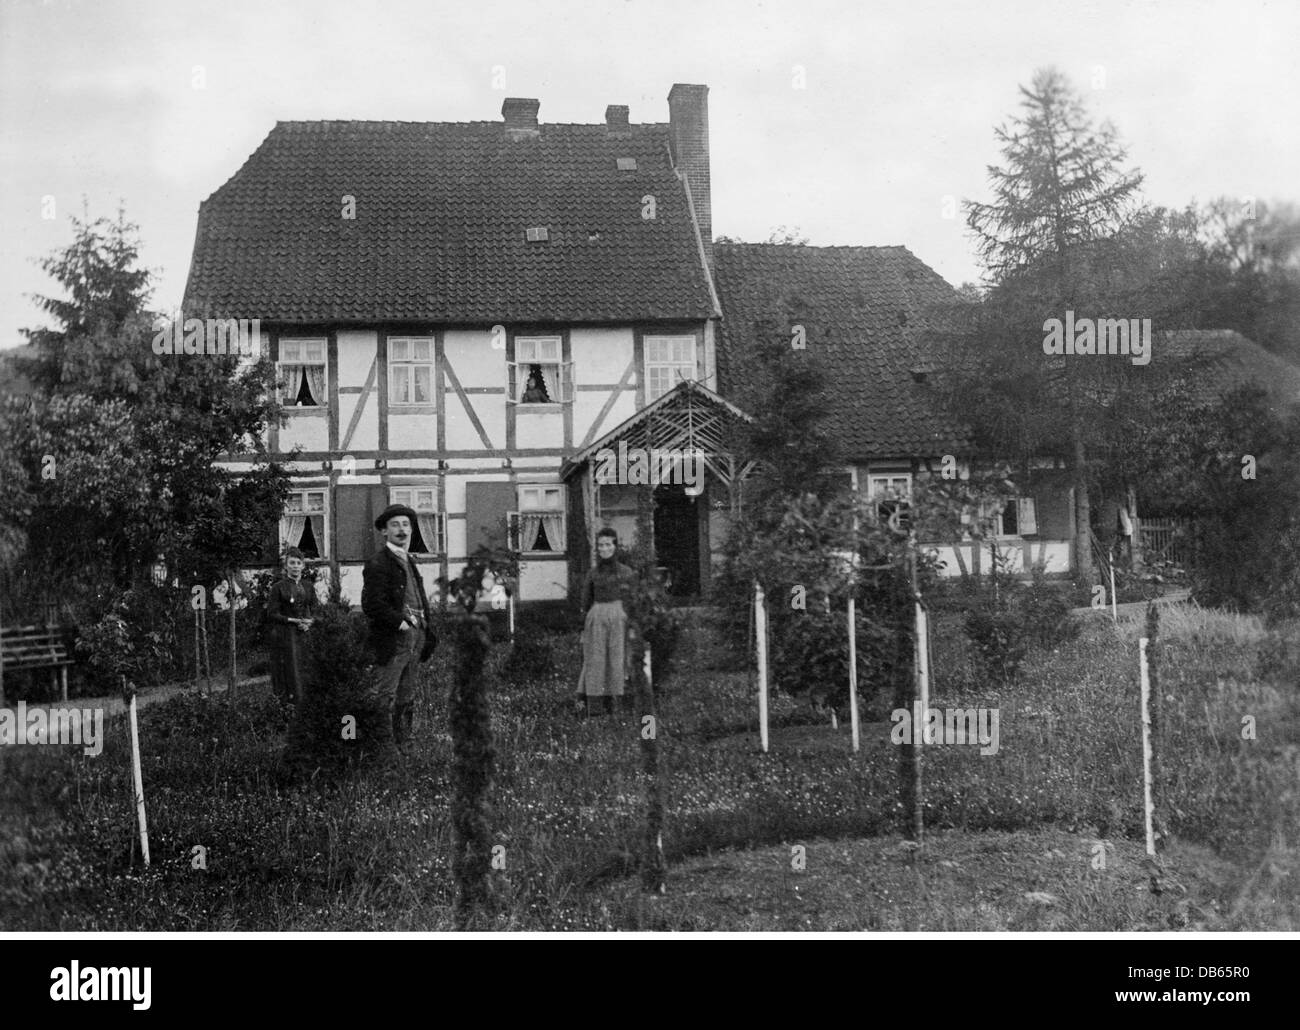 architecture, buildings, house of a forester in the Deister area, Lower Saxony, Germany, 25./26.5.1890, Additional - Stock Image